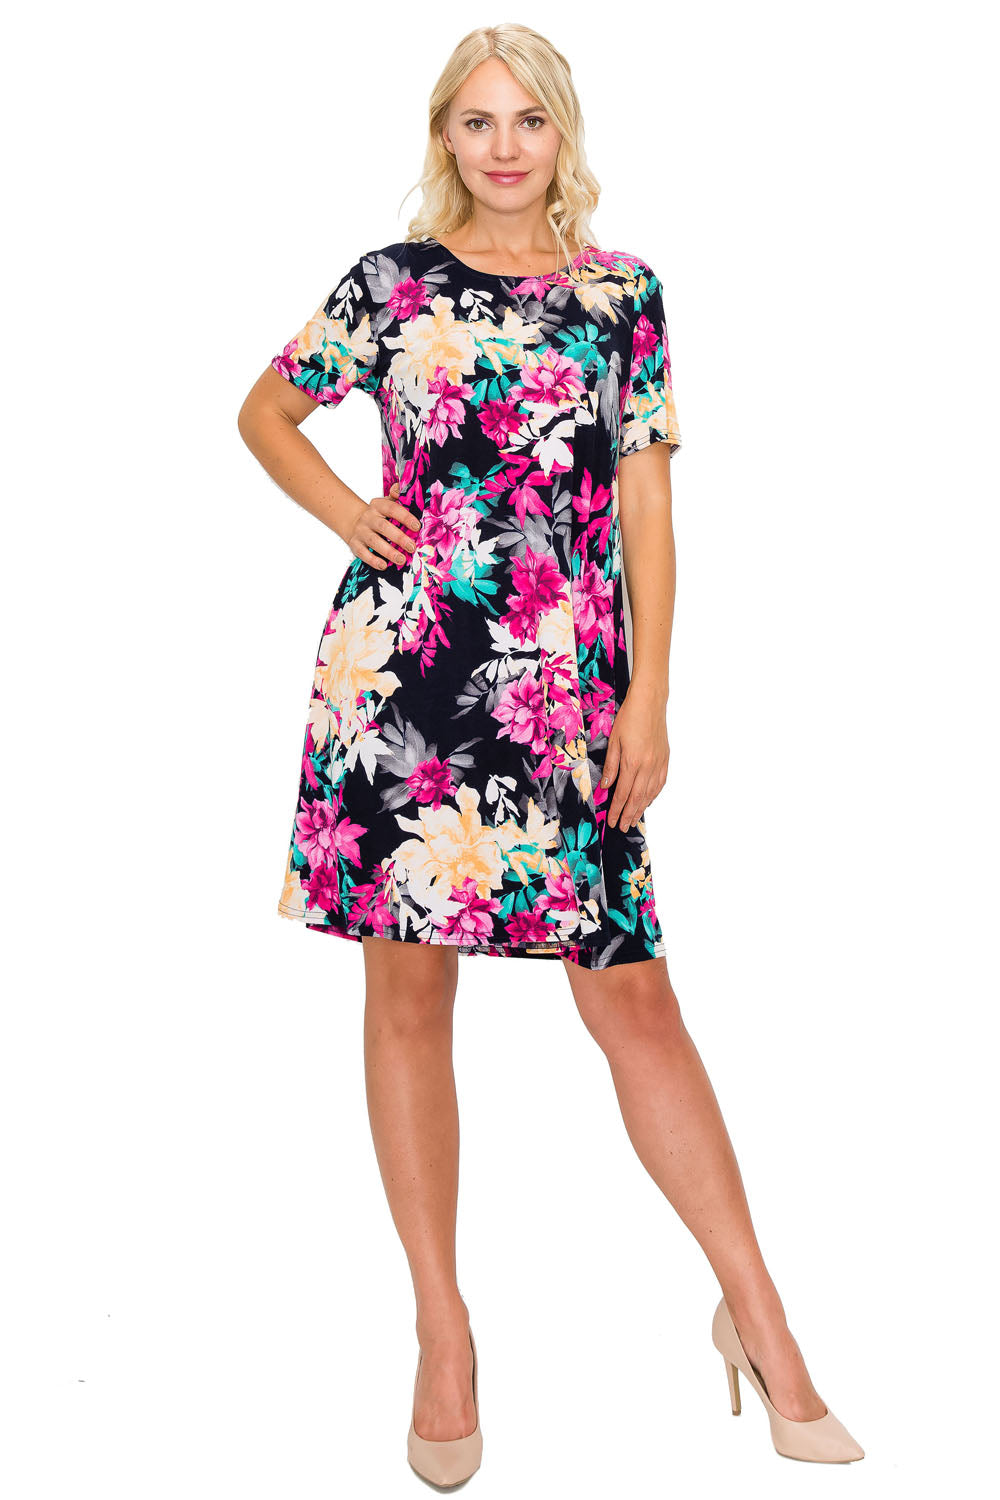 Jostar Women's Stretchy Missy Dress Short Sleeve Print, 704BN-SP-W214 - Jostar Online